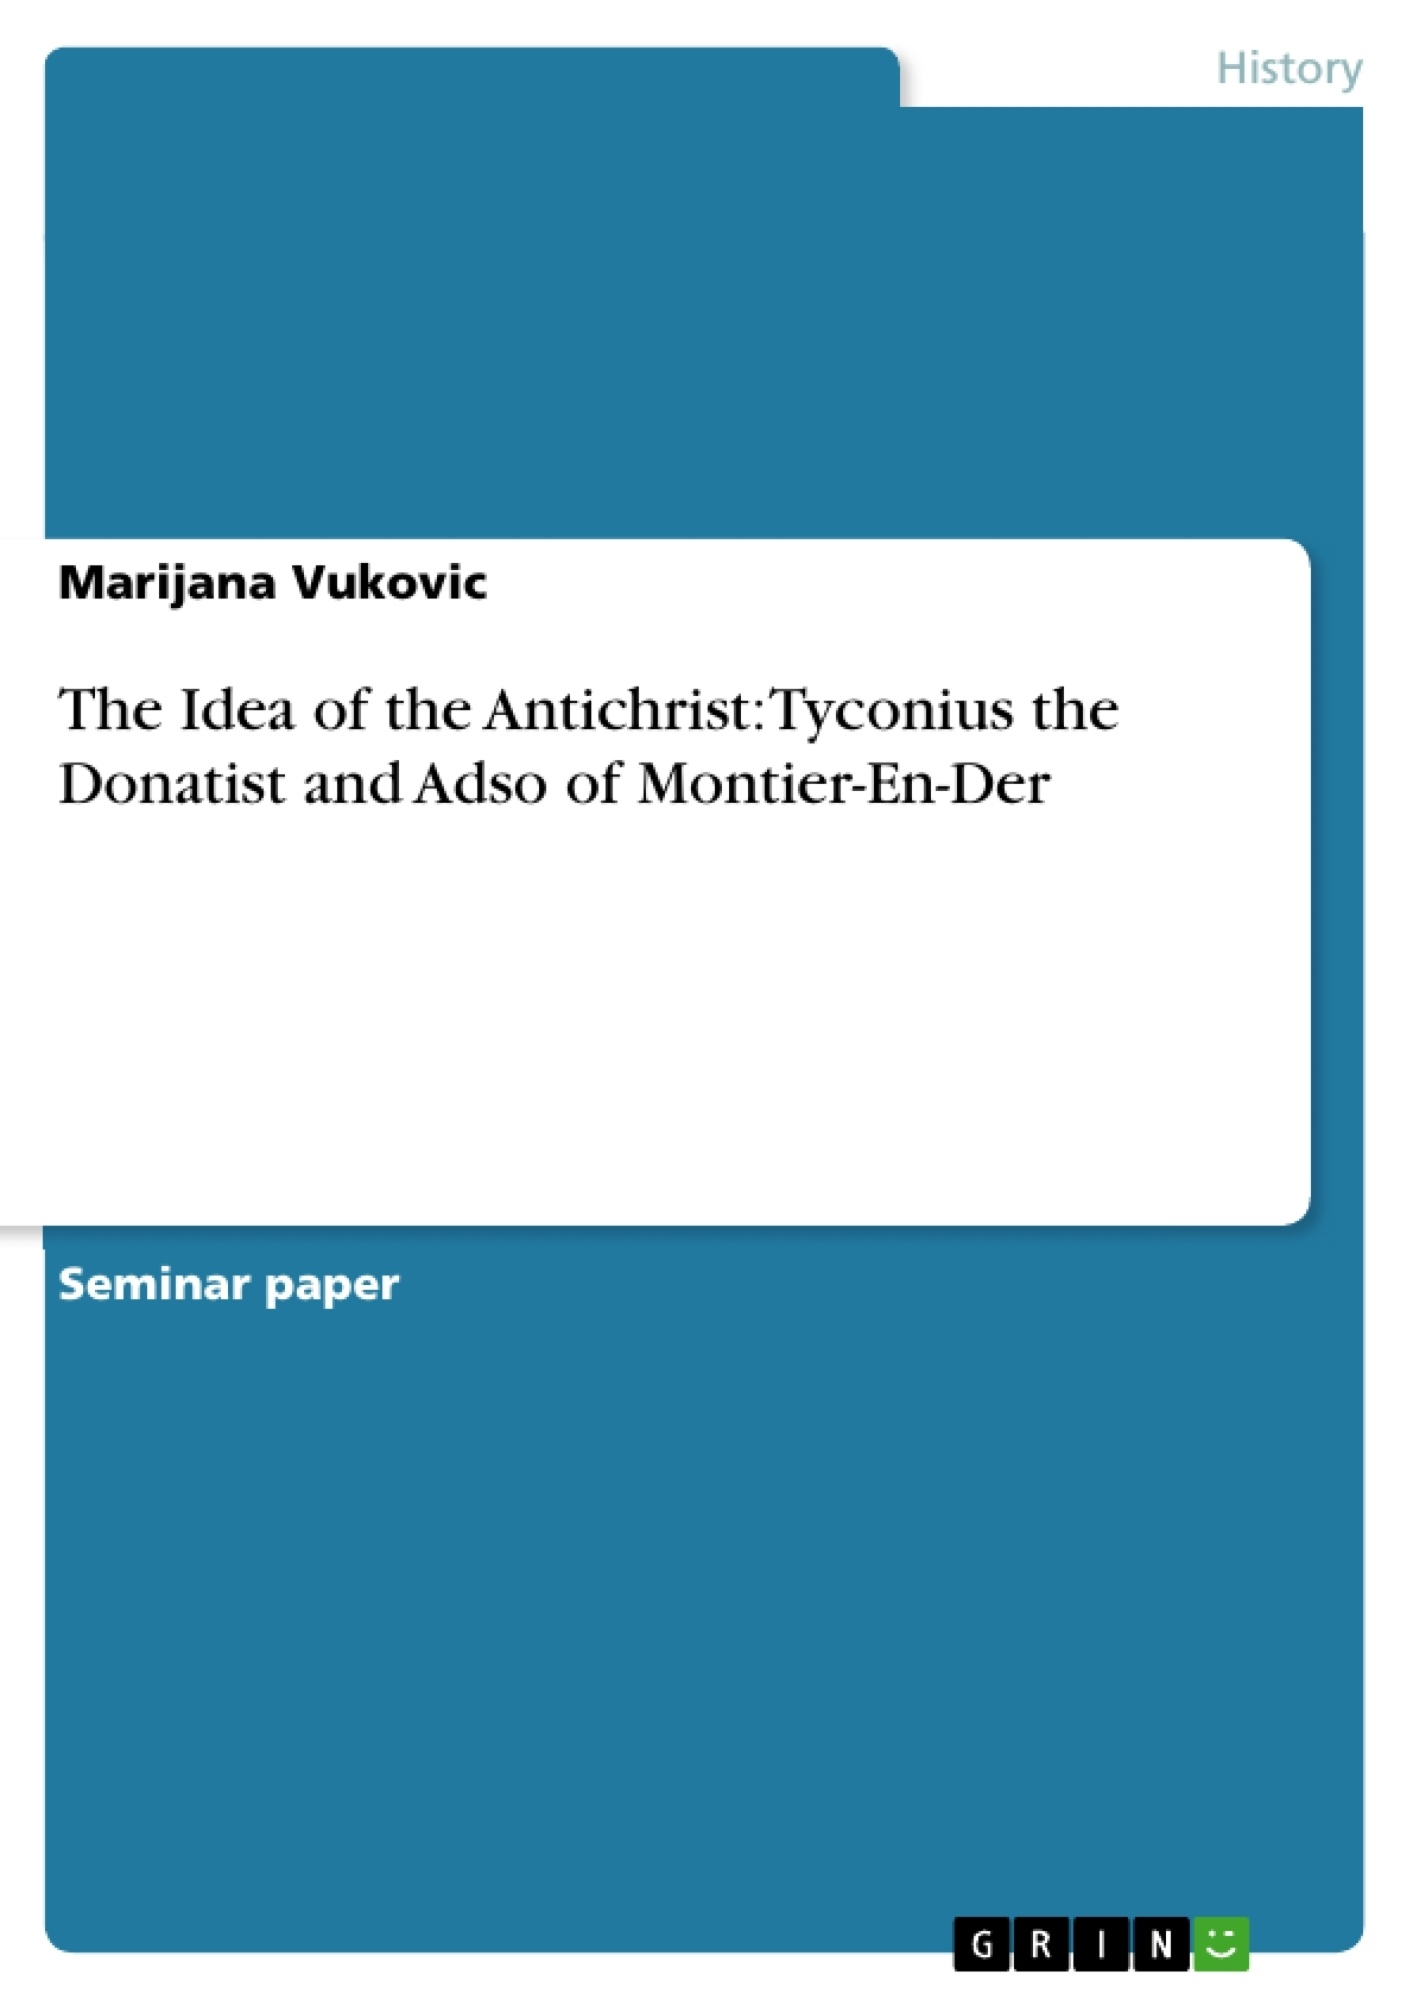 Title: The Idea of the Antichrist: Tyconius the Donatist and Adso of Montier-En-Der